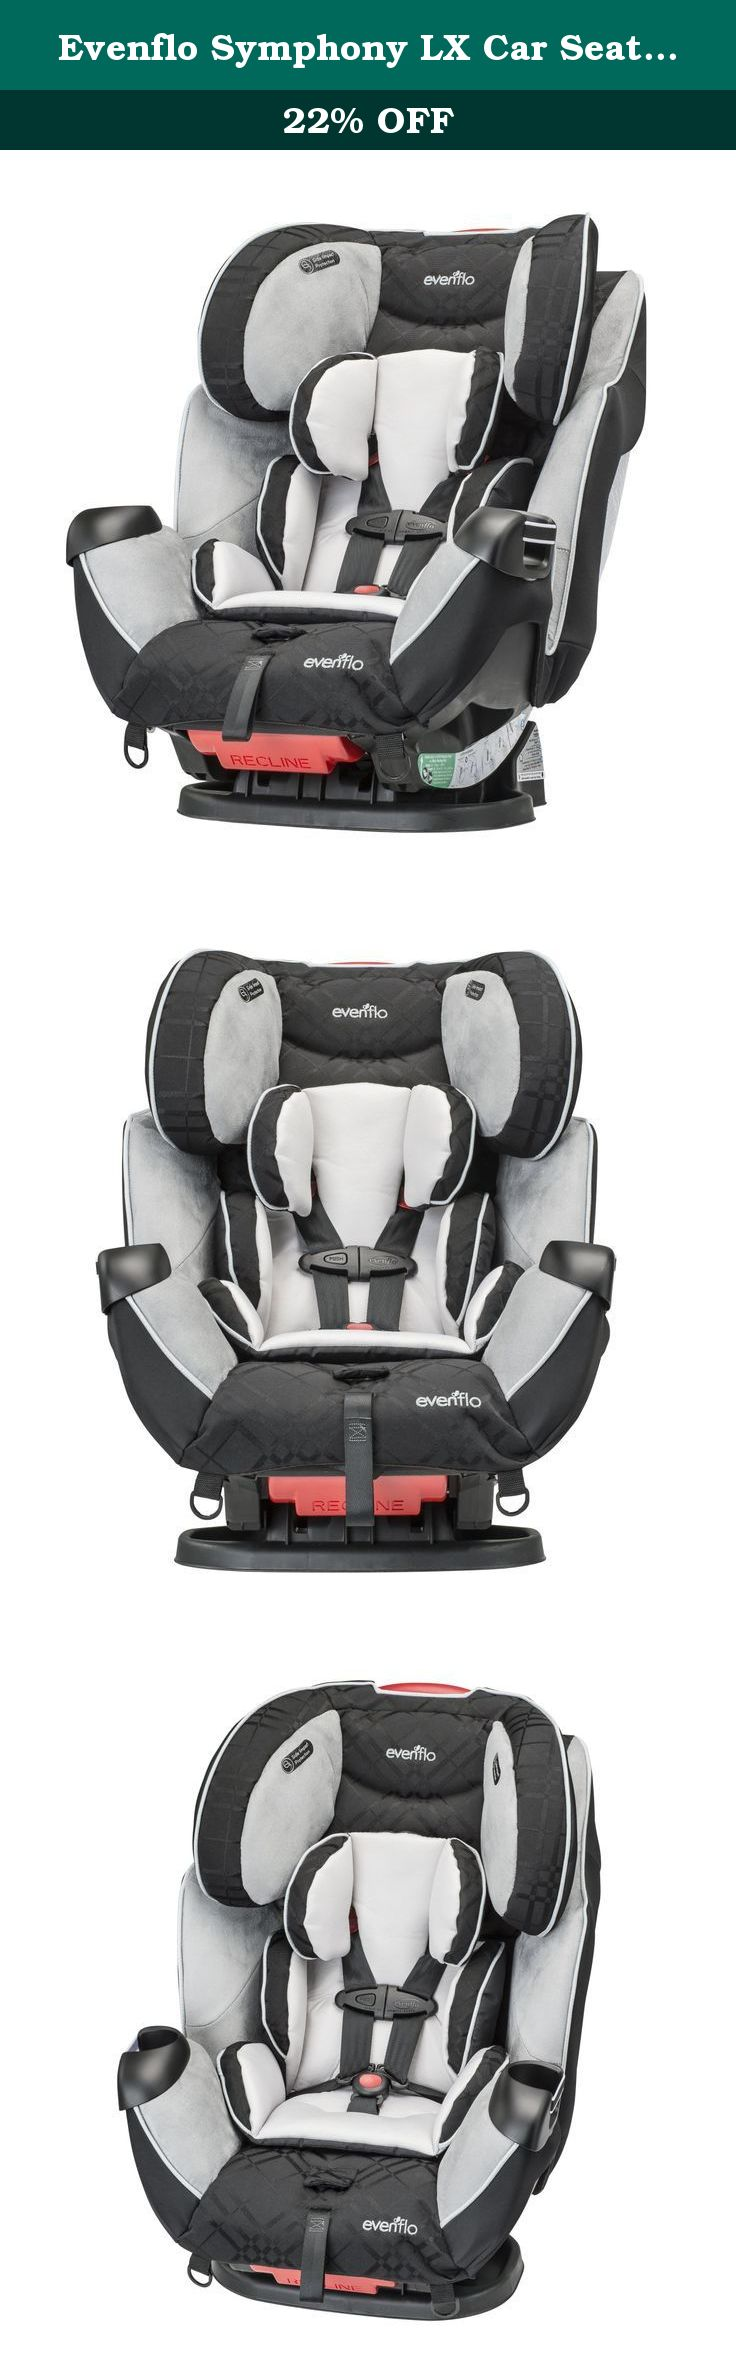 Evenflo Symphony LX Car Seat Crete The All In One